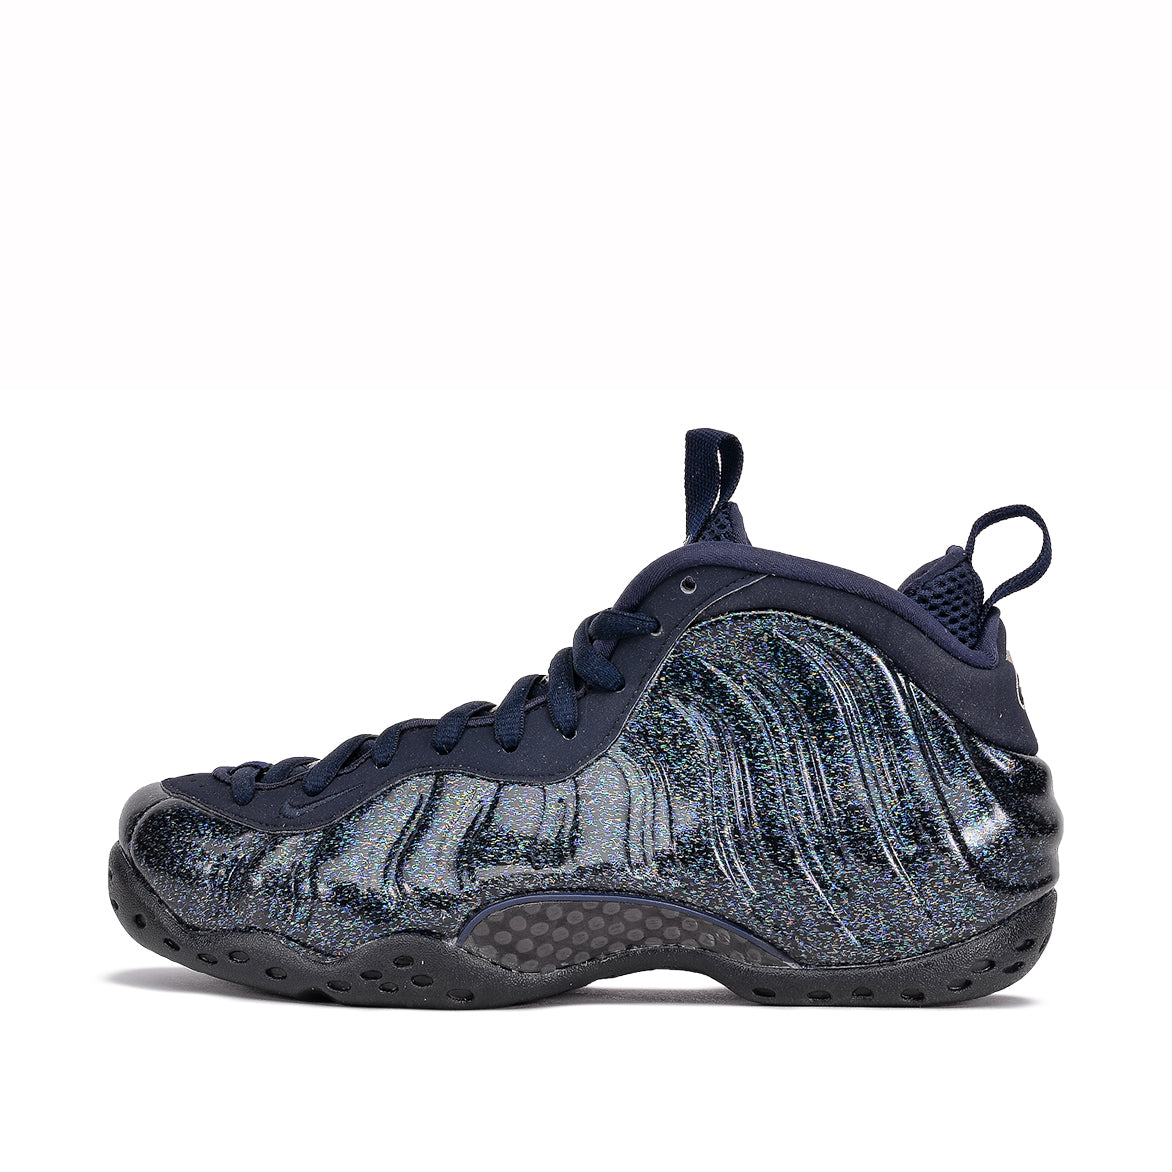 77ee2f7263686 WMNS AIR FOAMPOSITE ONE